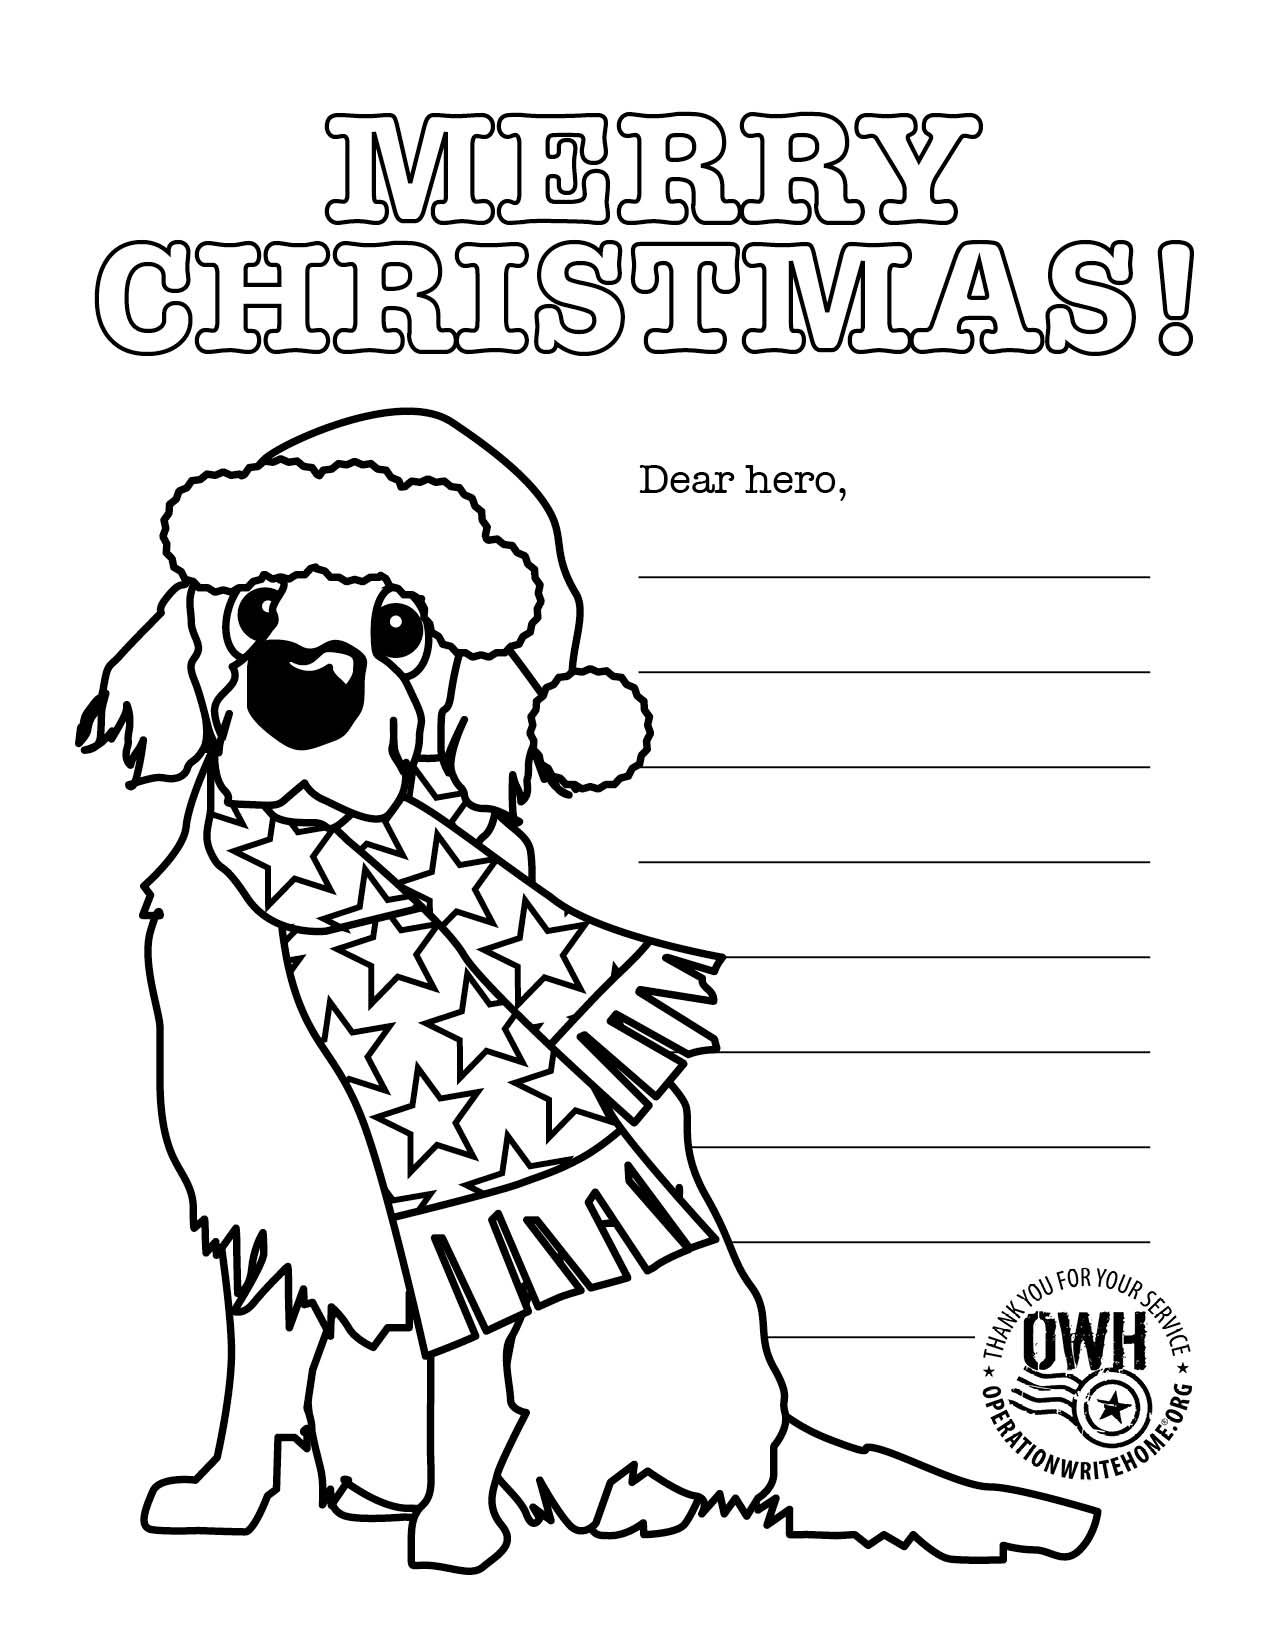 Christmas Coloring Pages For Veterans With Operation Write Home Children Can Complete These